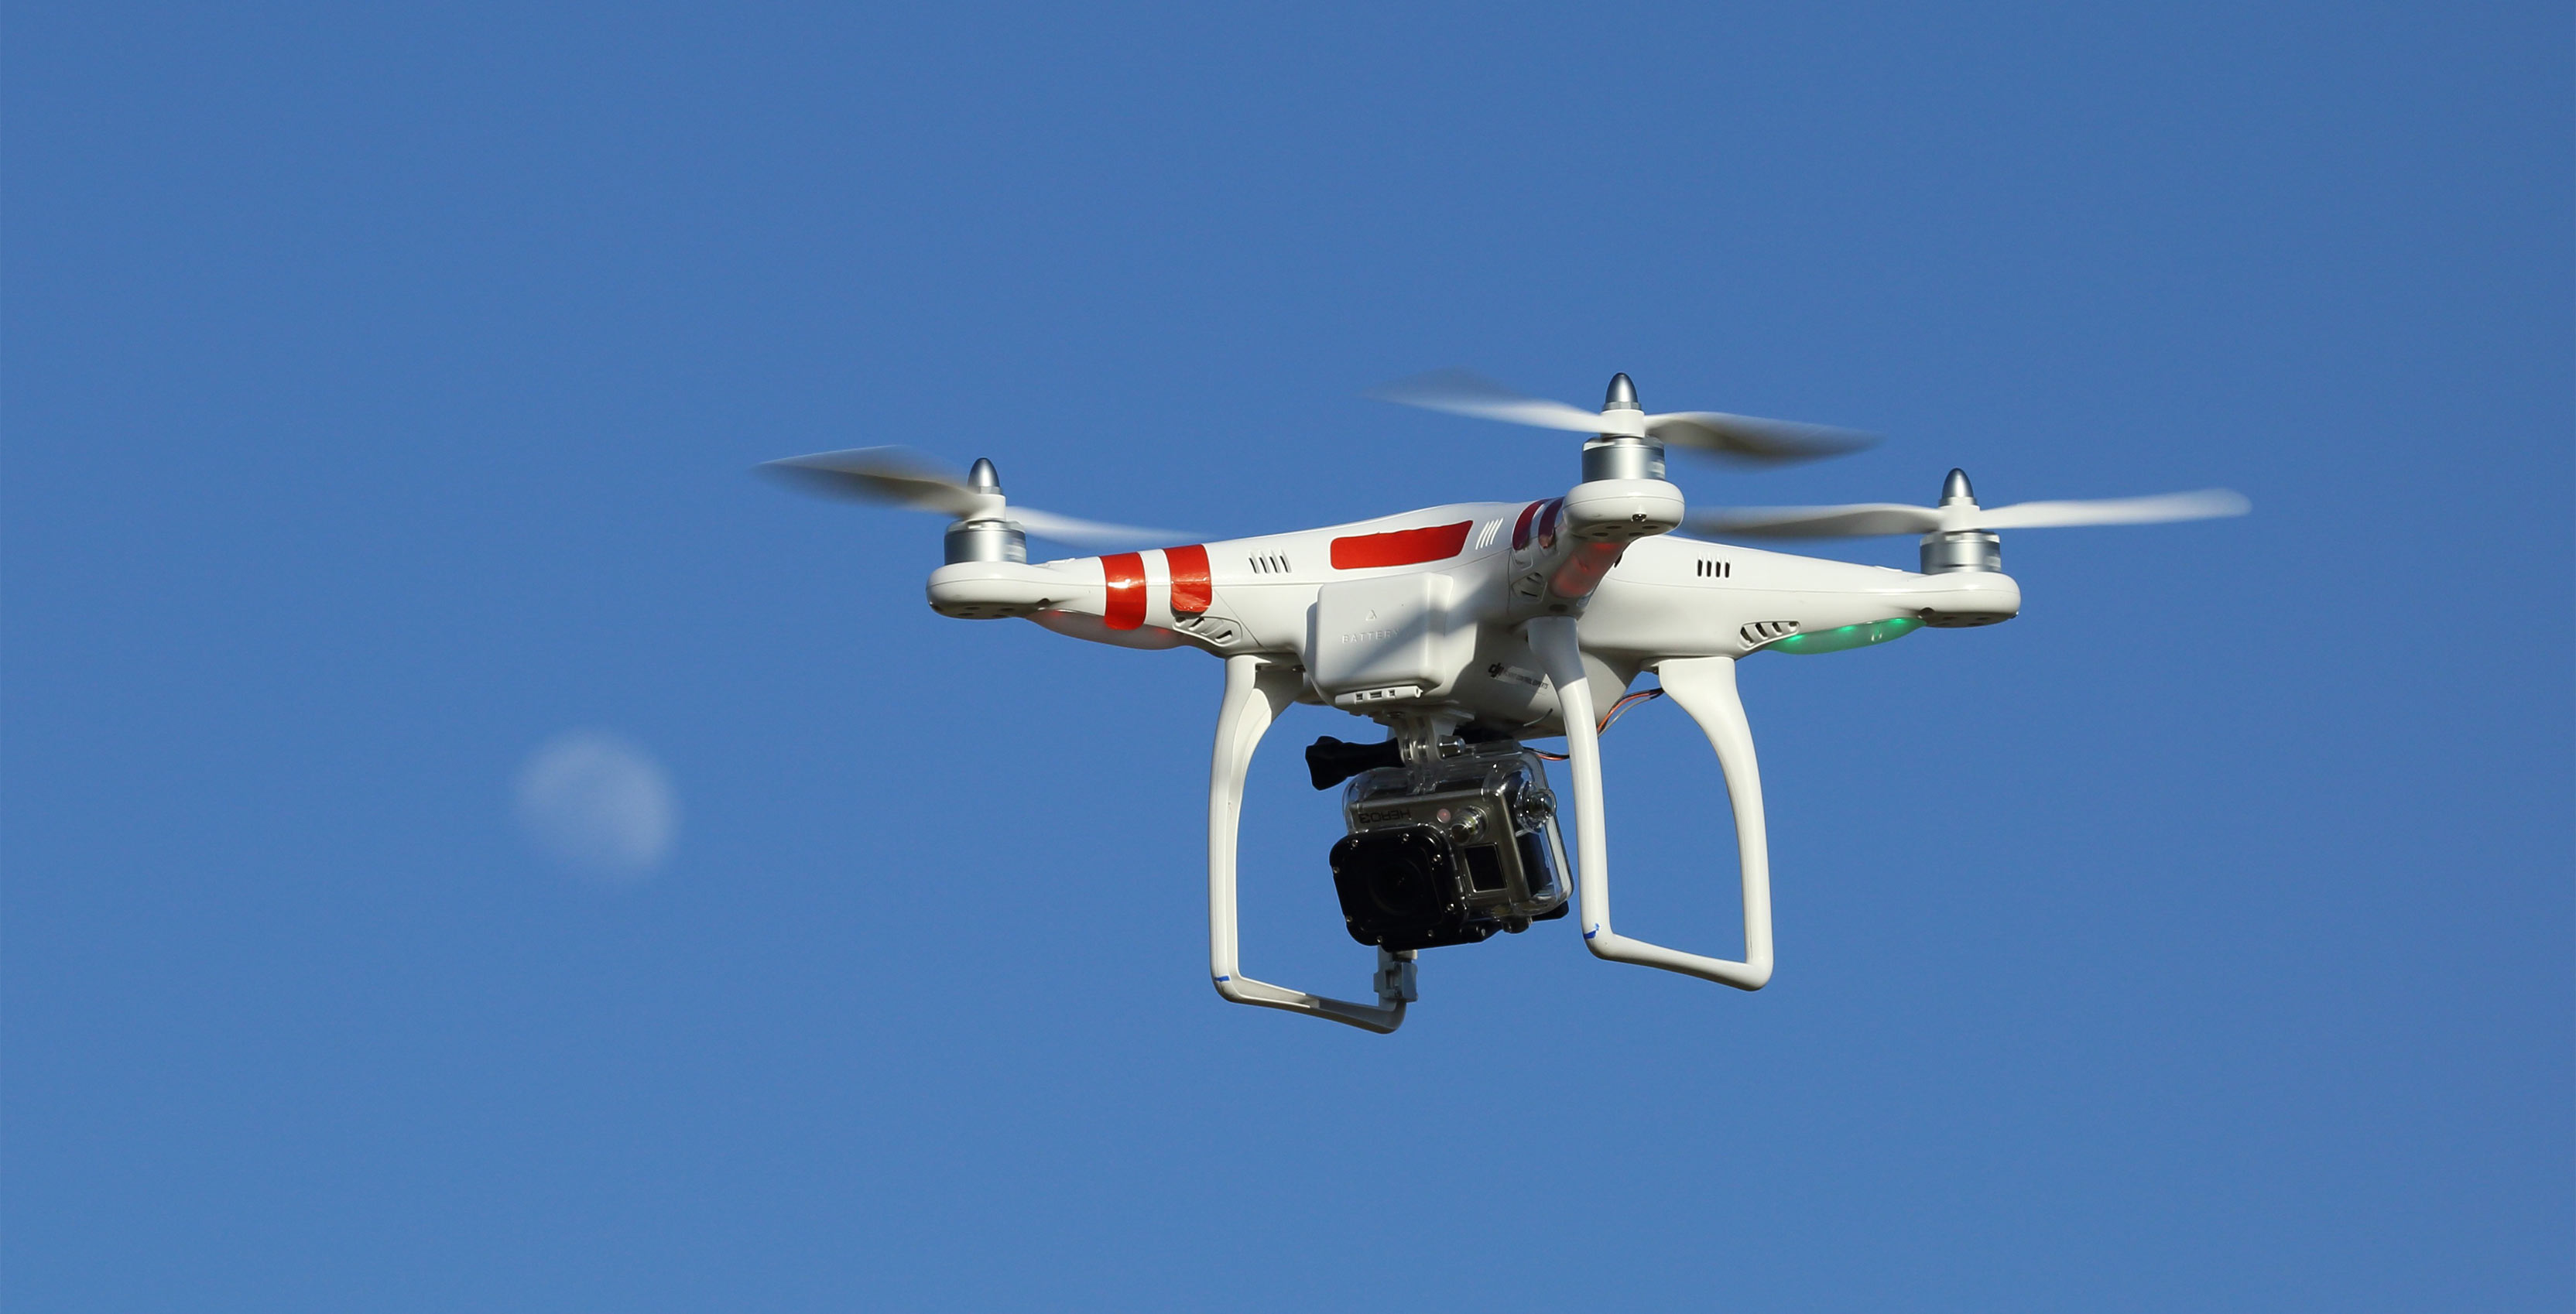 Aerial drone regulations released